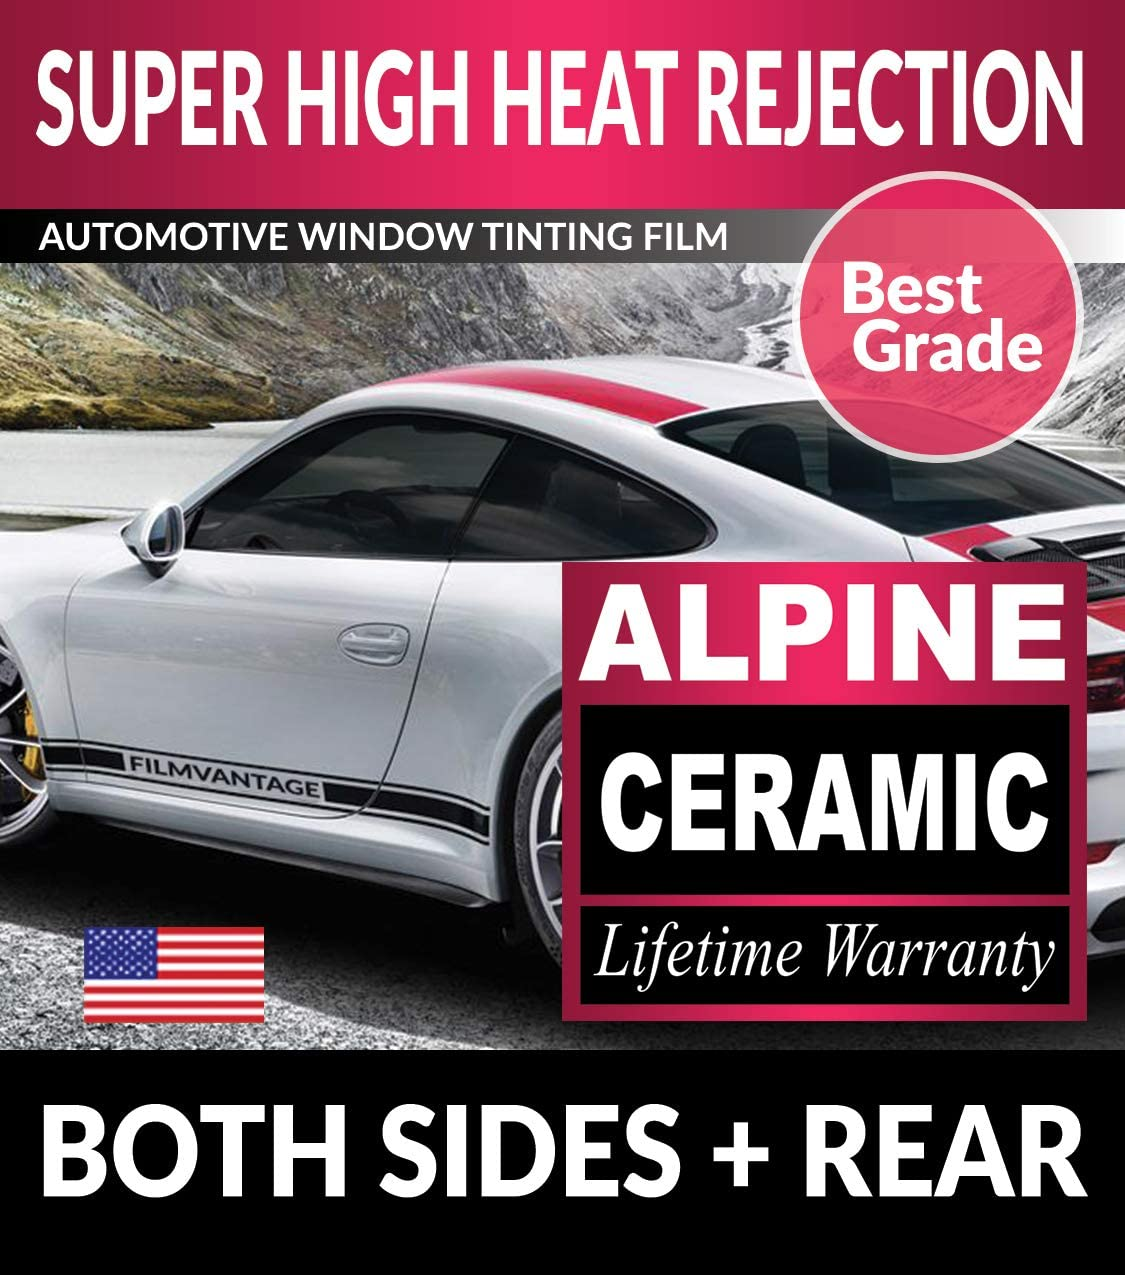 Super High Heat Rejection Alpine Precut Window Tint for VW/Volkswagen Golf 4Dr 1999-2001 2002 2003 2004 2005 2006 - F50R35